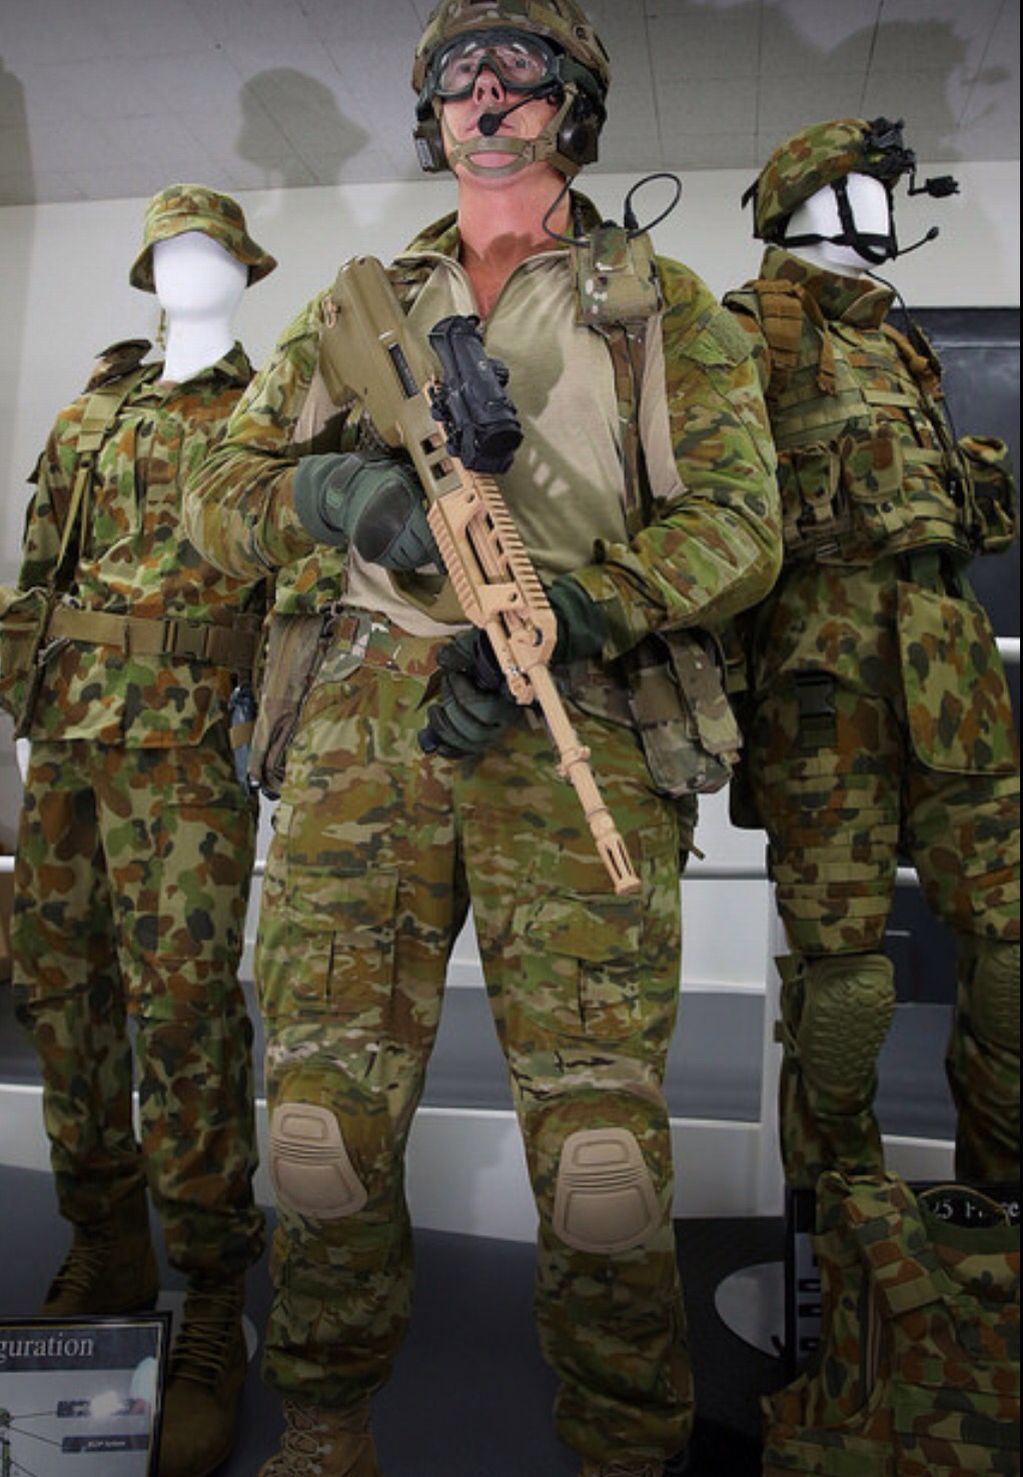 NOTE AUSCAMMULTICAM hybrid, body armour, new pouches (For